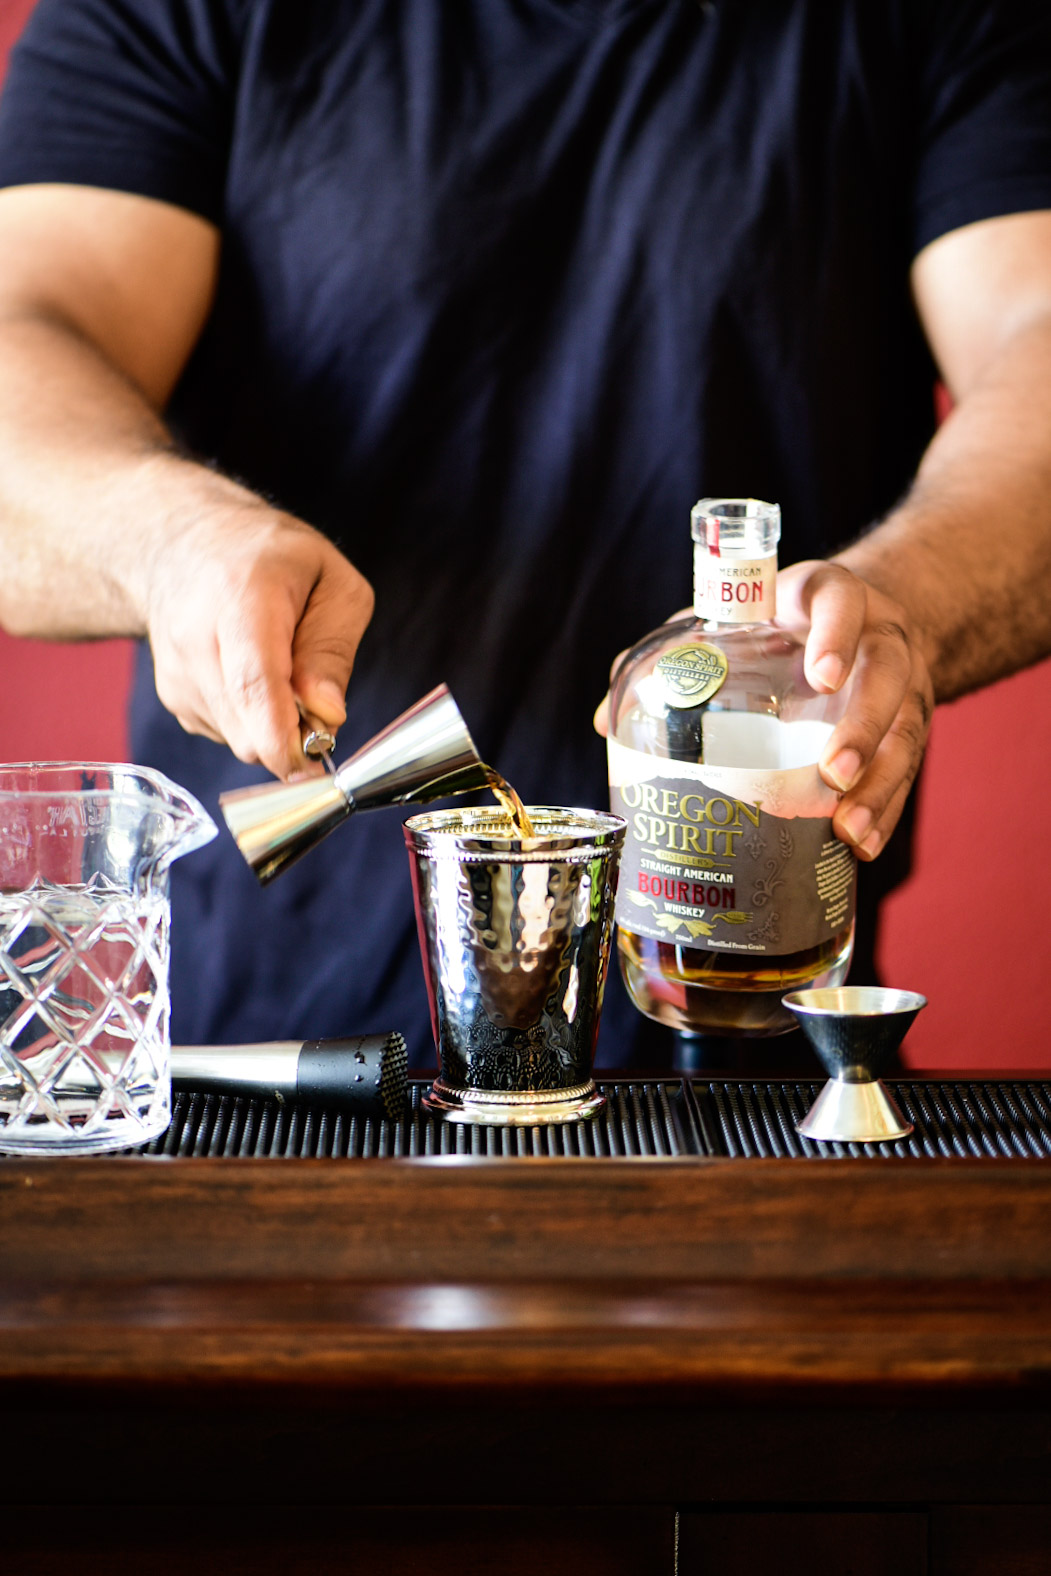 Pouring bourbon into mint julep cup